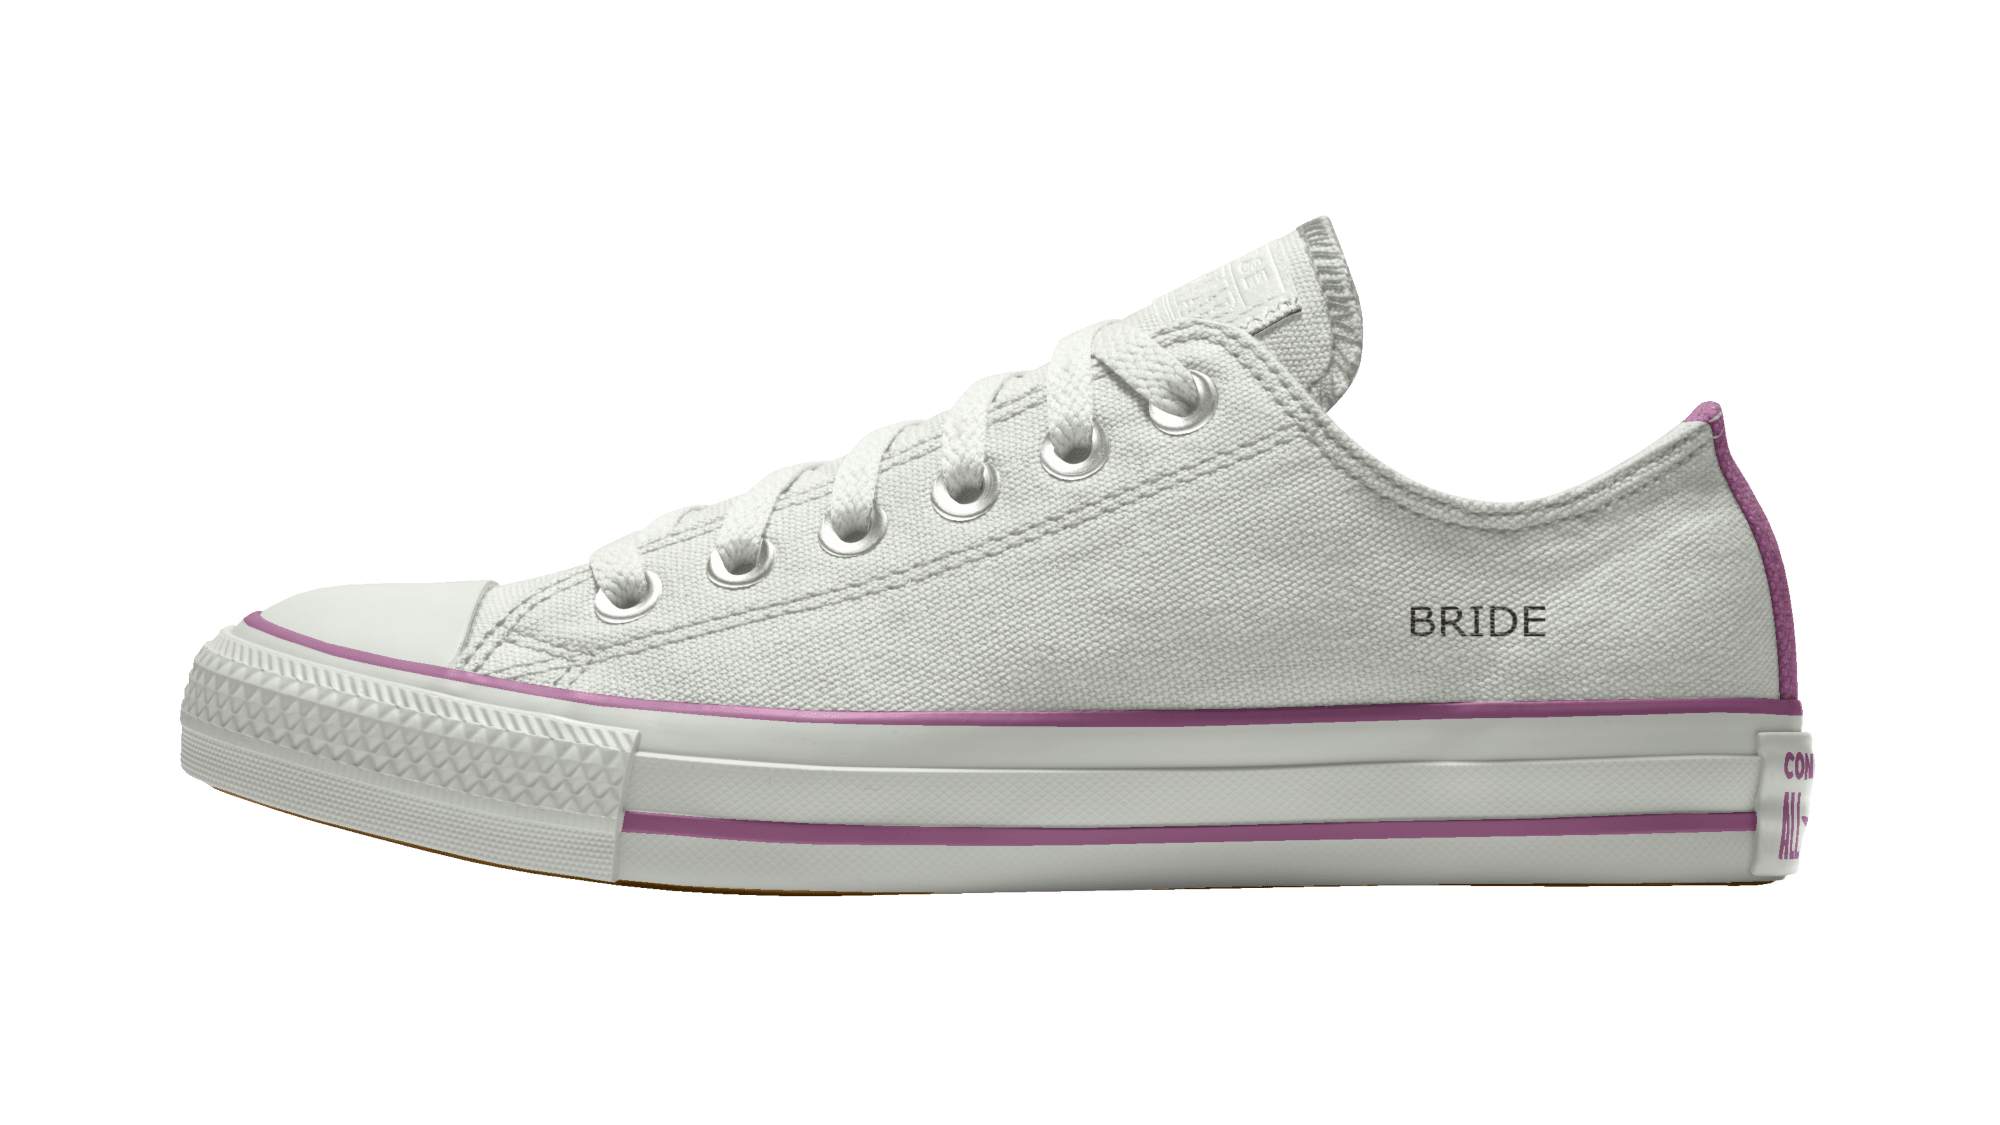 Converse has launched their own wedding line